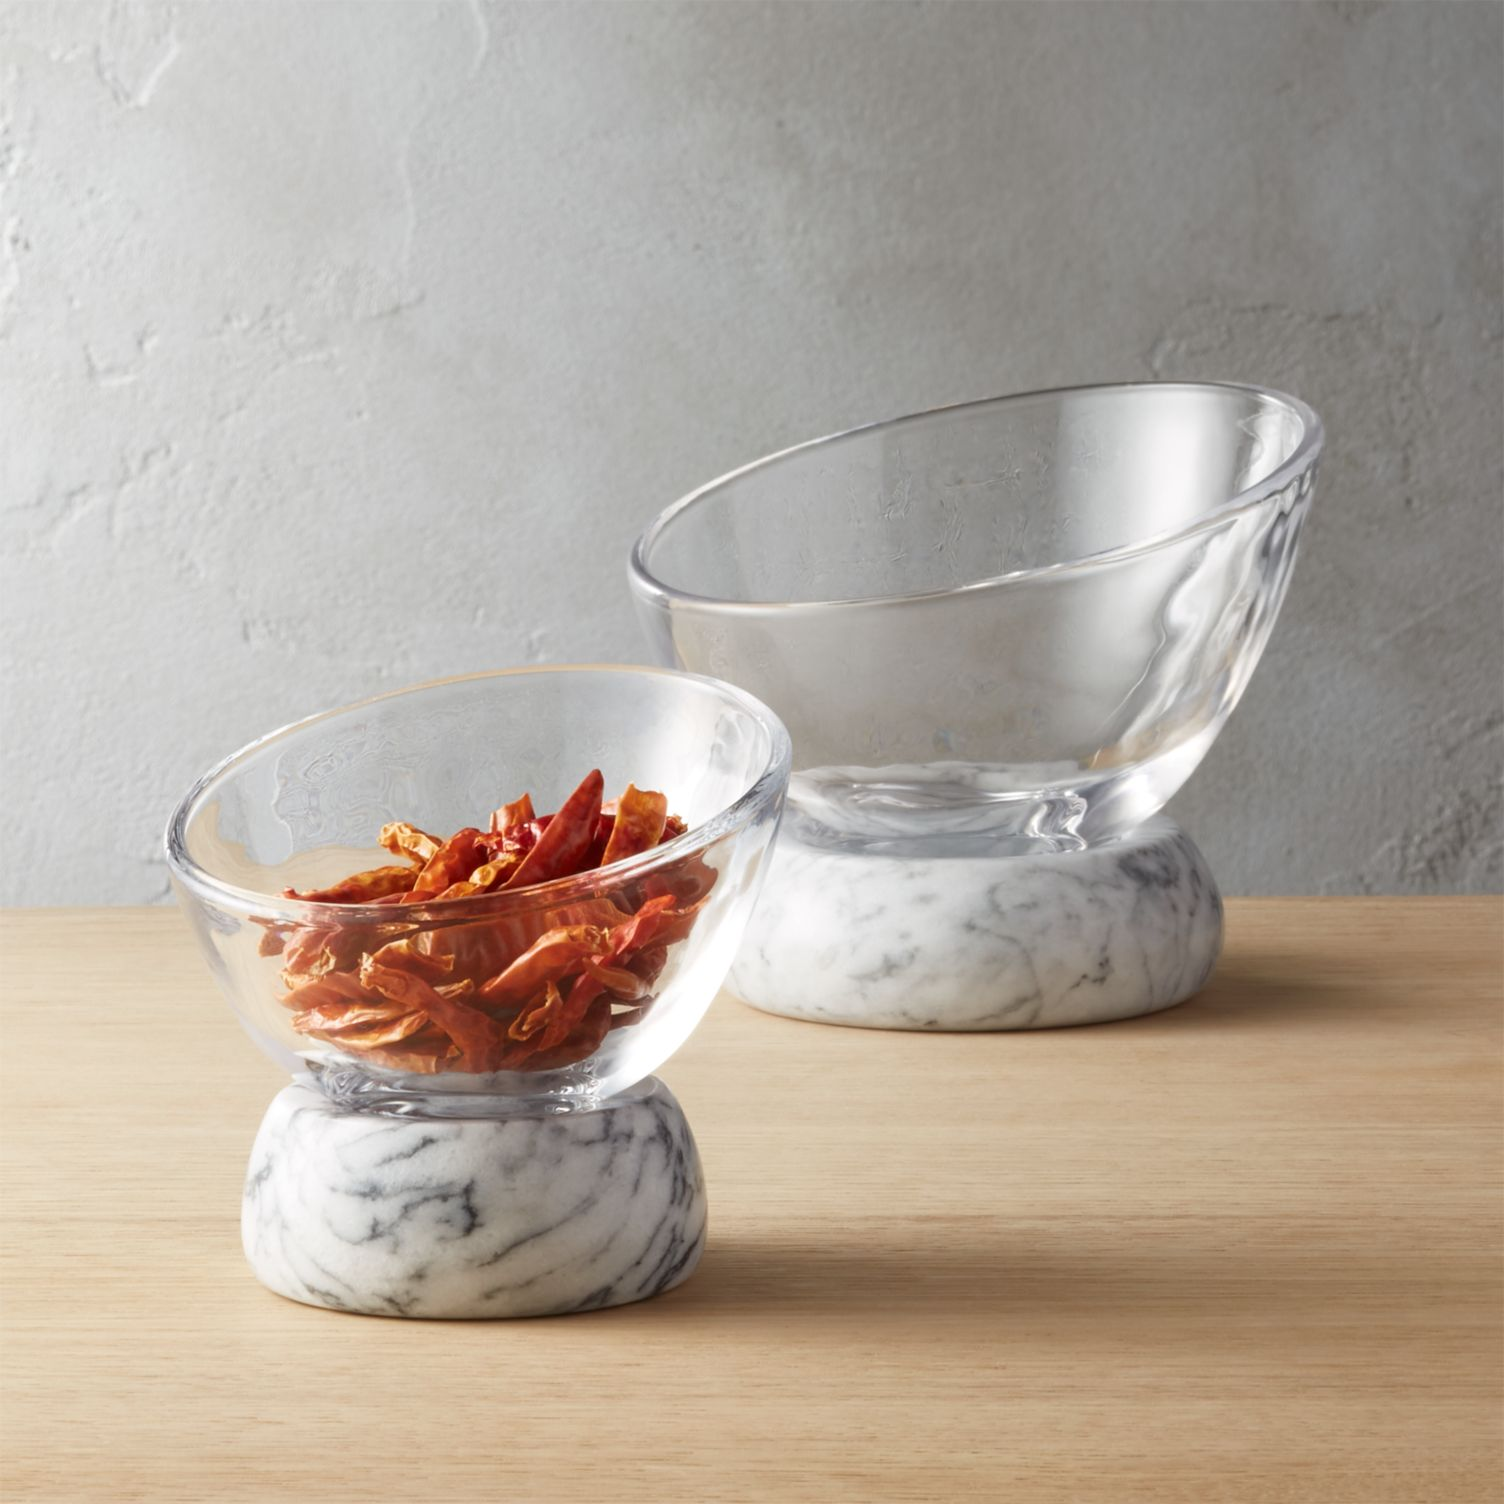 Marble and glass serving bowls from CB2